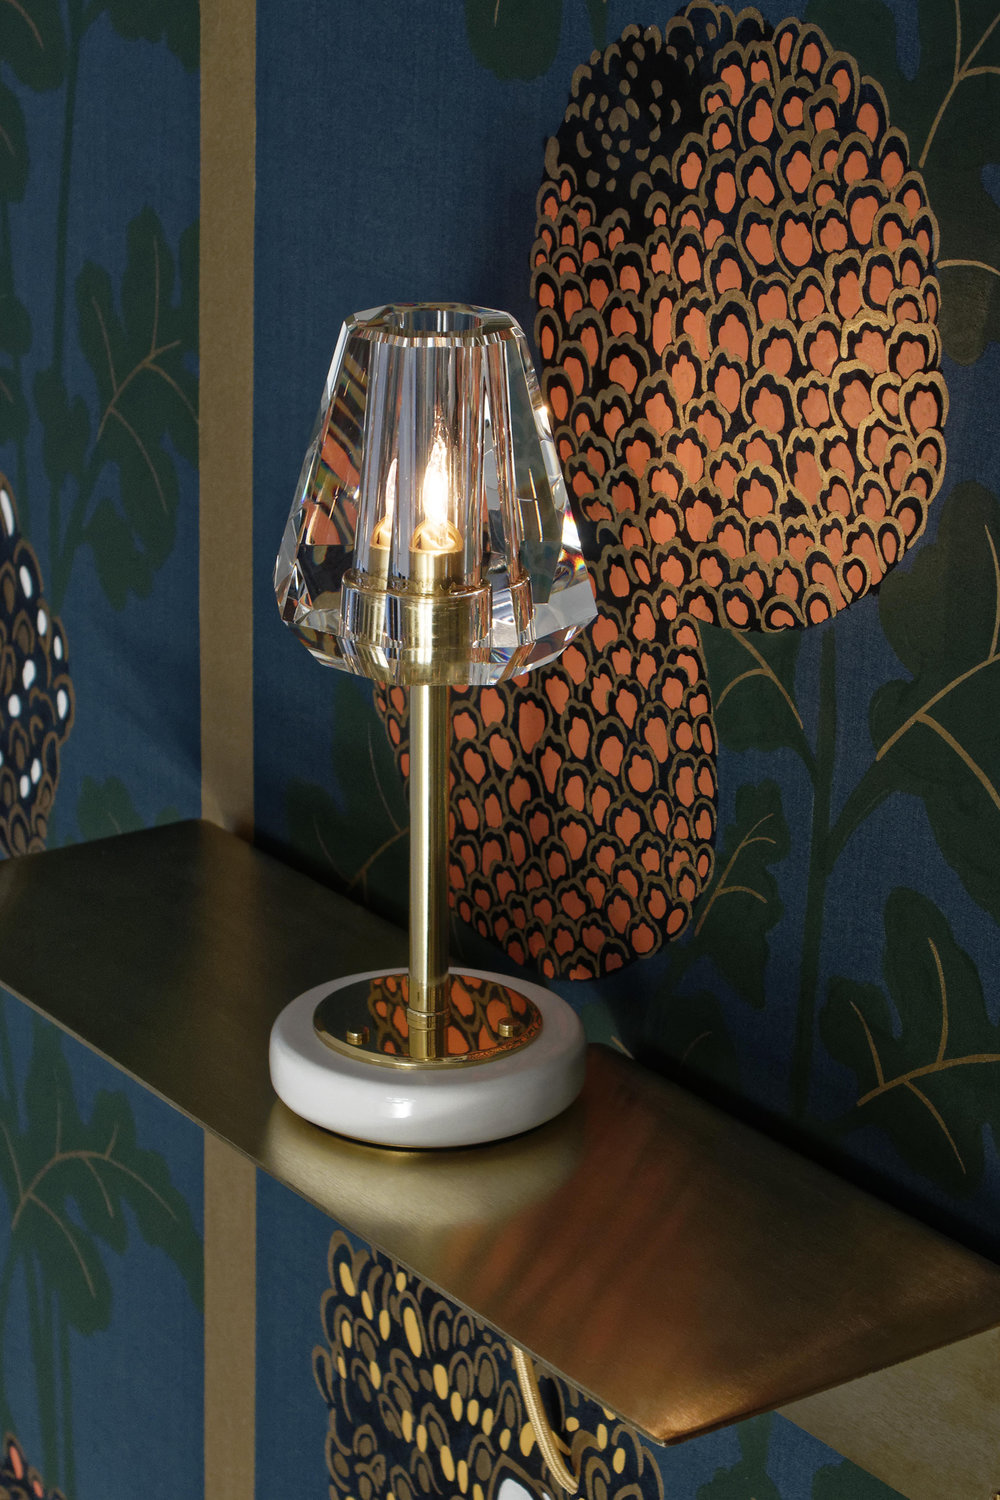 The Aquiline Single Arm Table Lamp with a striking handpainted Fromental wallcovering.